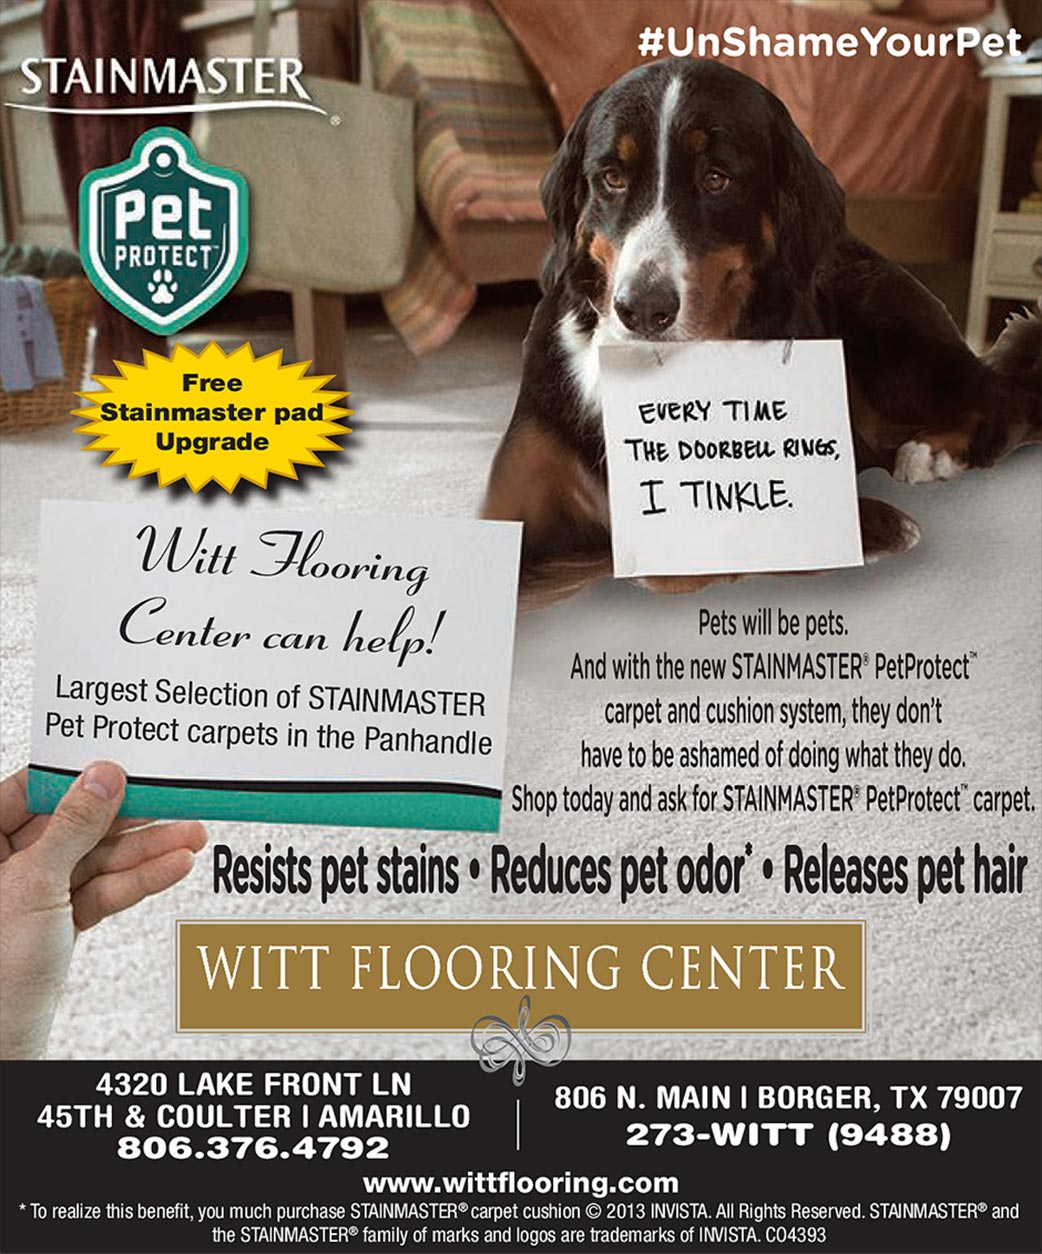 Stainmaster Pet Protect available now at Witt Flooring Center at two convenient locations in Amarillo & Borger